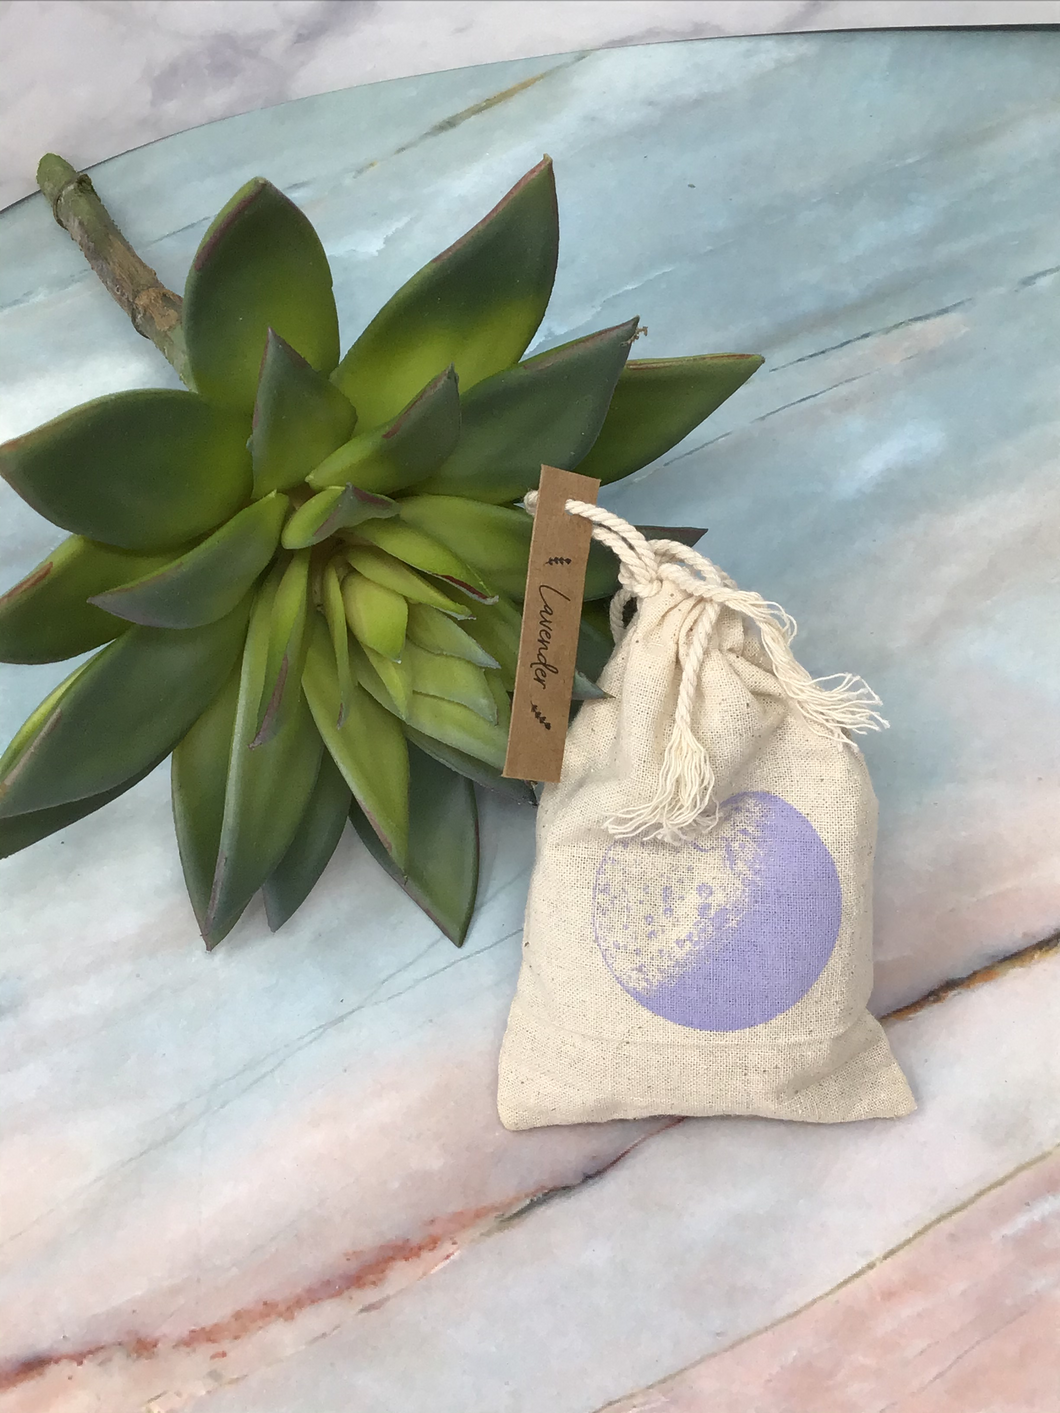 Seattle seed co. Lavender sachet